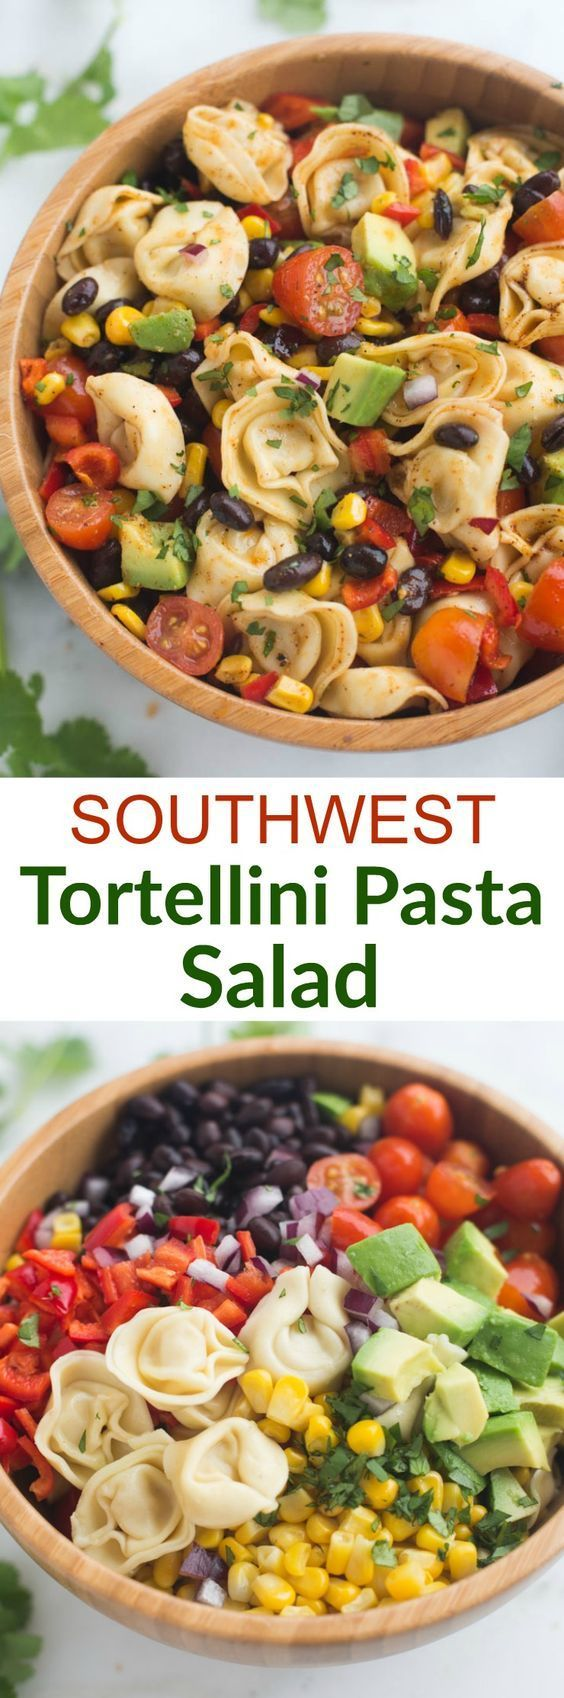 Southwest Tortellini Pasta Salad . Tasty fresh ingredients combine for this yummy salad. can't wait to make this!- Tastes Better From Scratch.